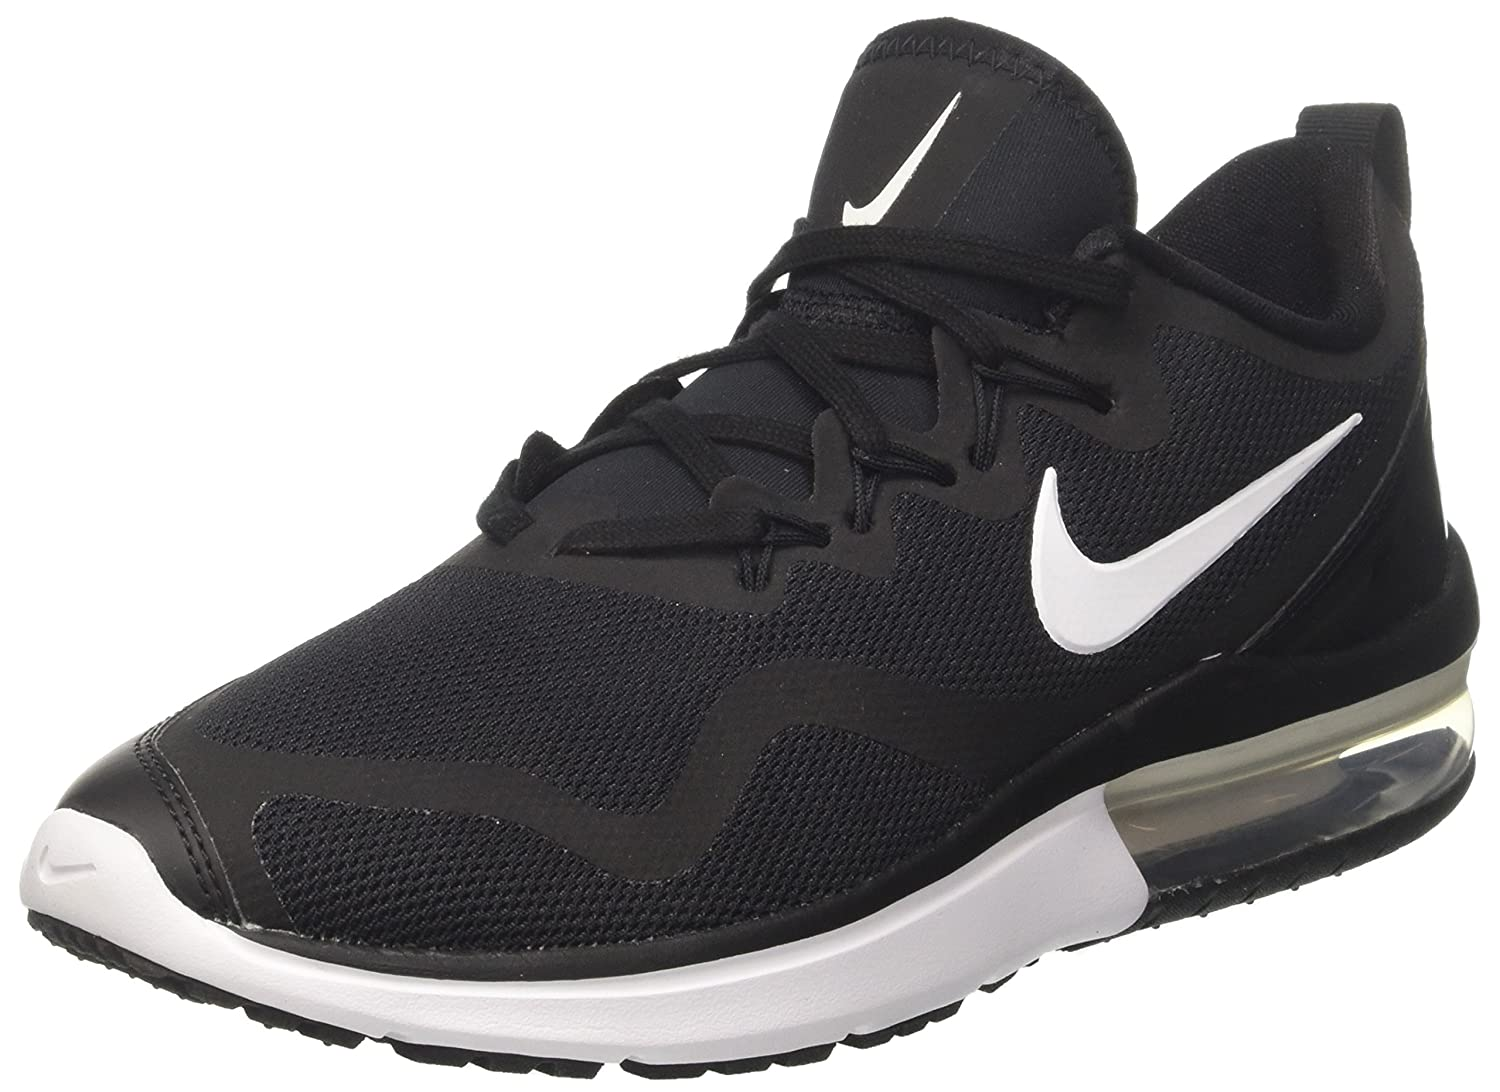 Nike Women's Air Max Fury BlackWhite Black Low Top Cross Trainer Shoe 7M